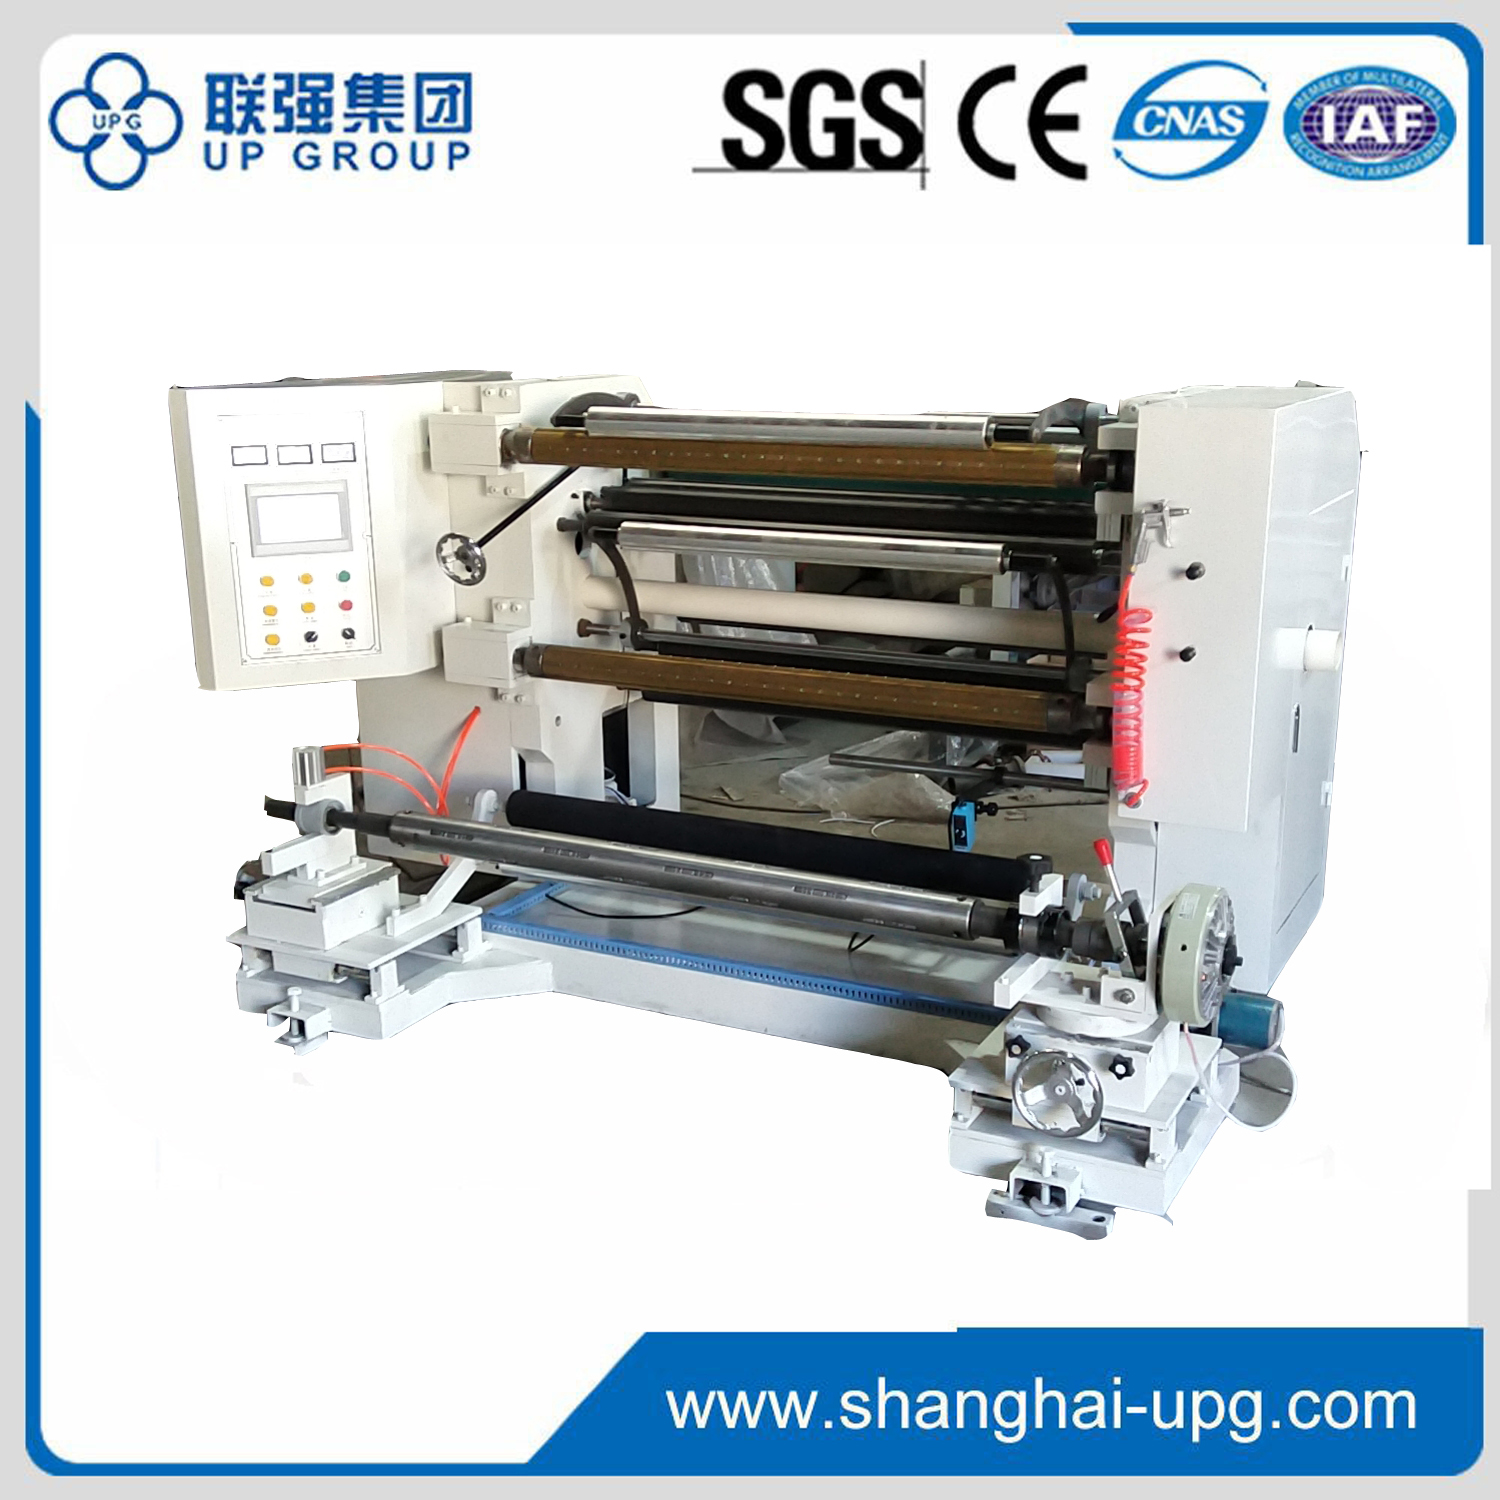 LQ-1100/1300 Microcomputer high speed slitting machine